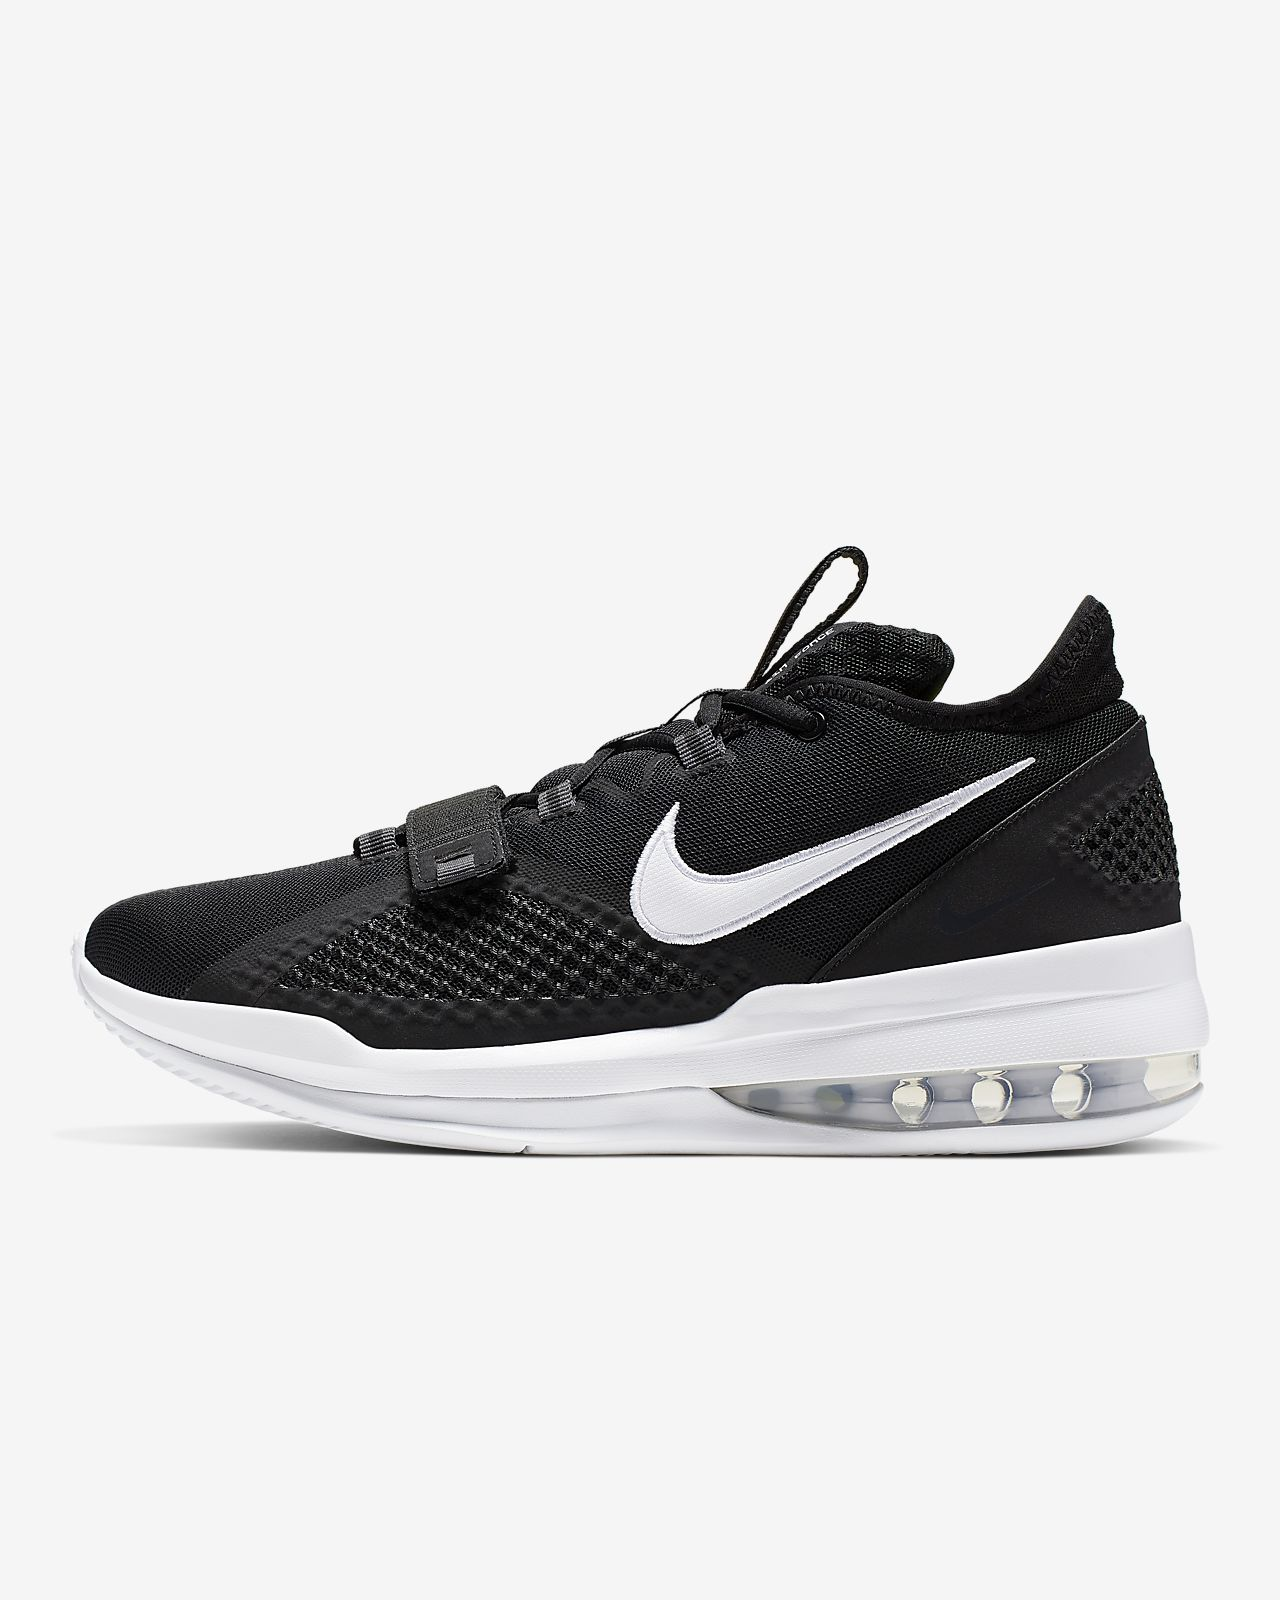 Nike Air Force Max Low Sz 10.5 Bv0651 001 Black Baske